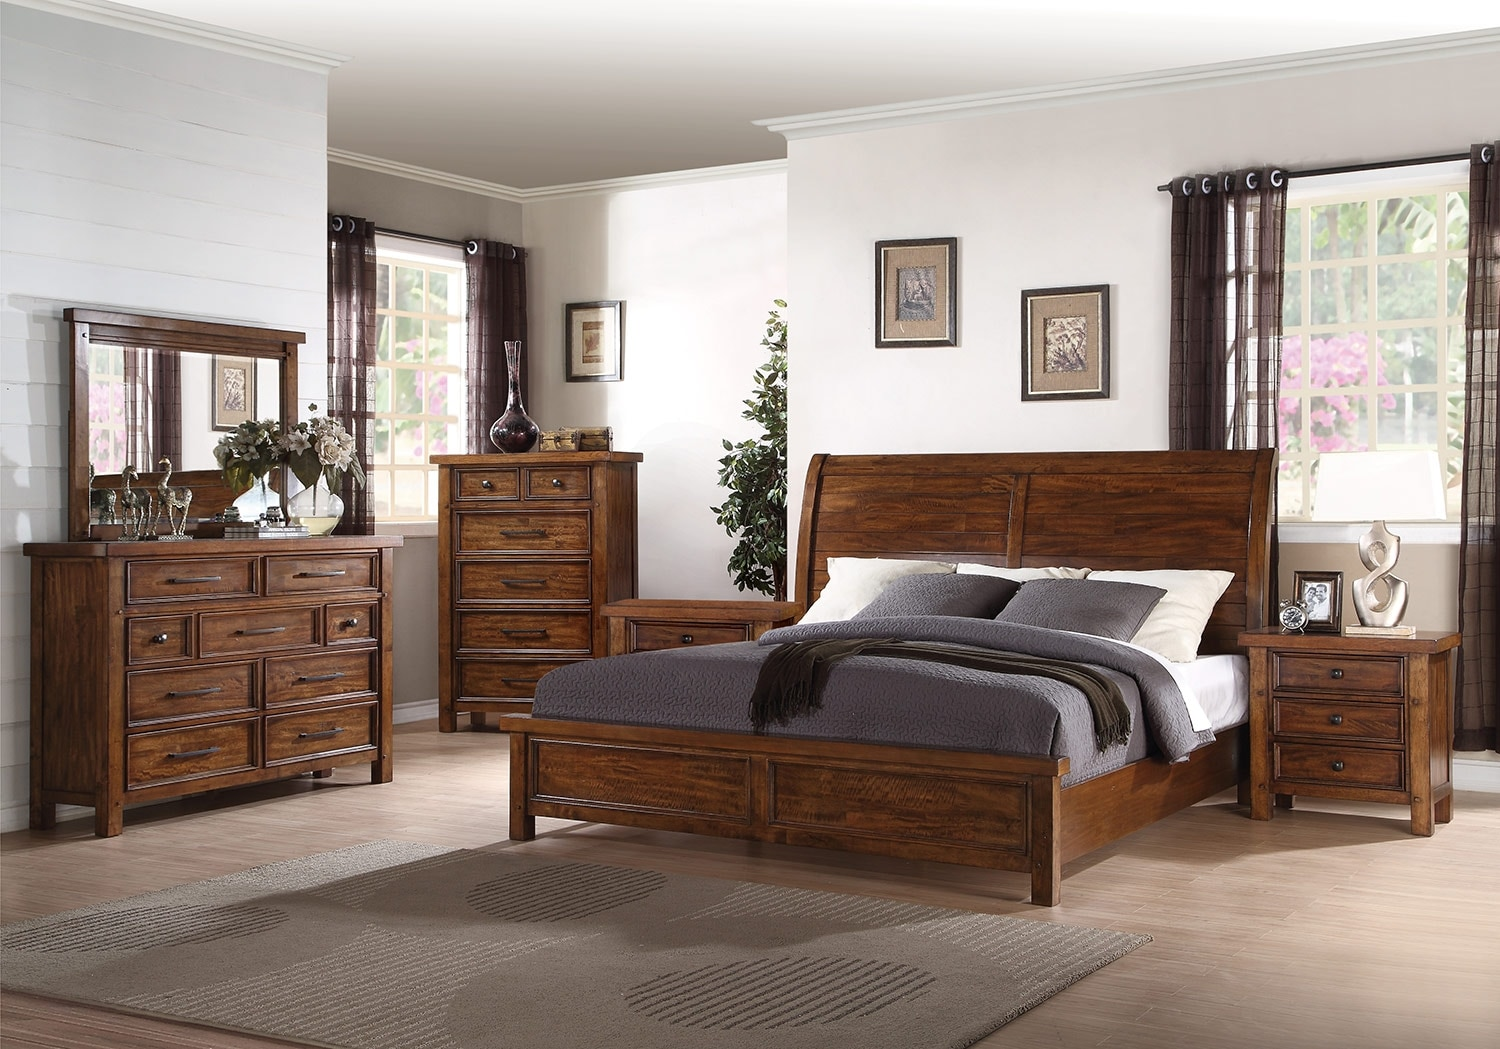 Bedroom Furniture - Sonoma 8-Piece King Bedroom Package – Medium Brown